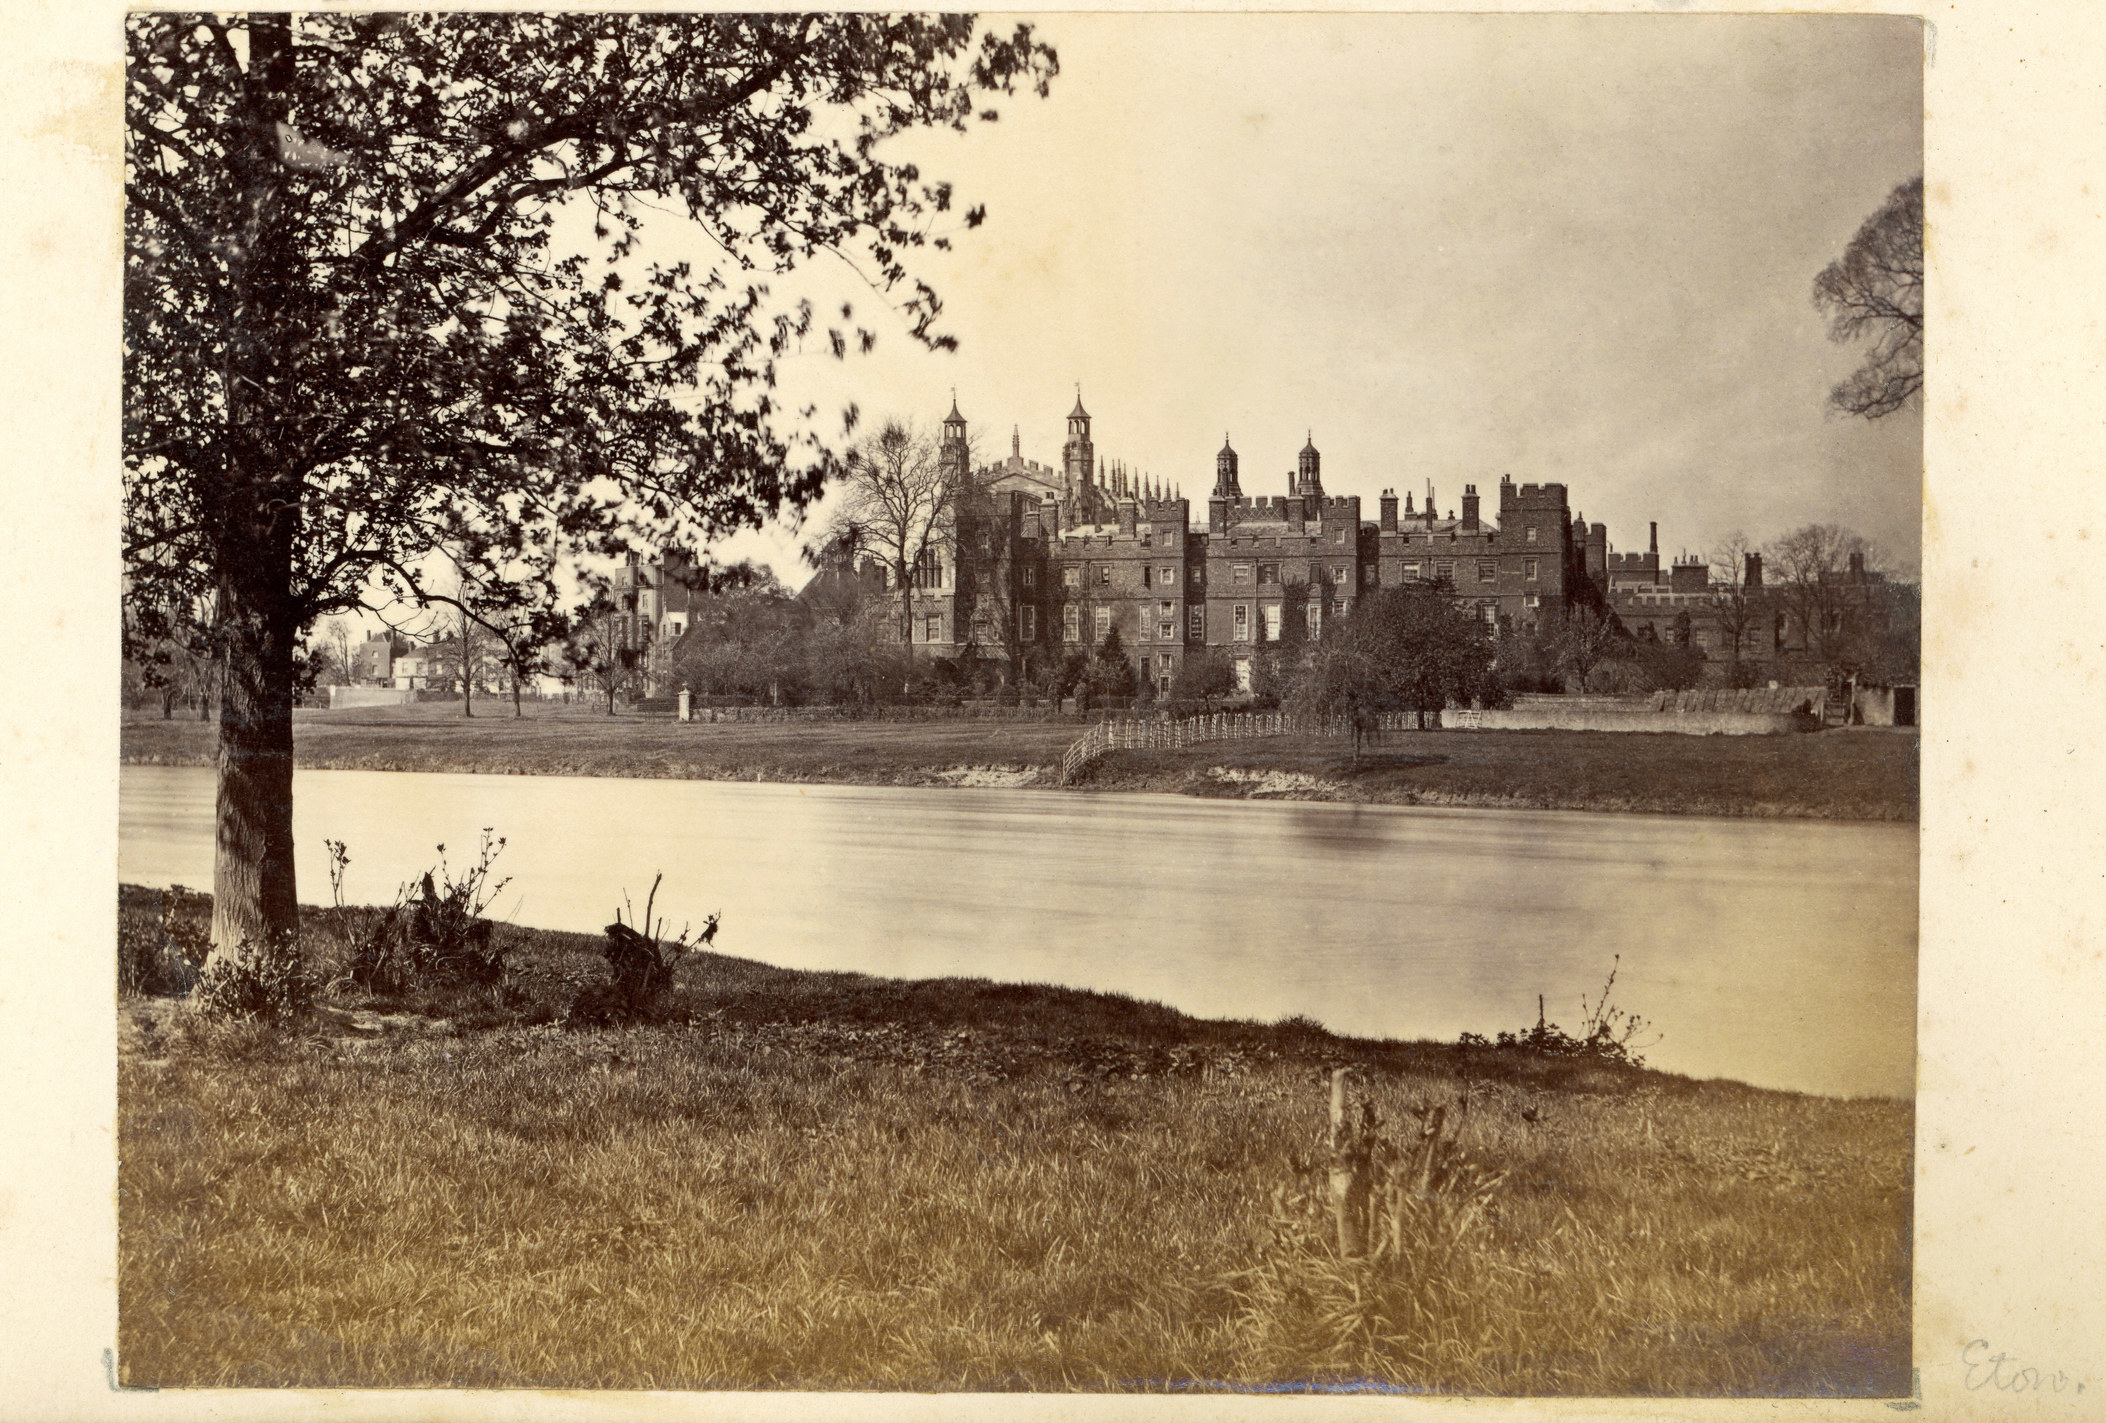 Vintage photograph taken circa 1870 of Eton College a British independent school for boys aged 13 to 18